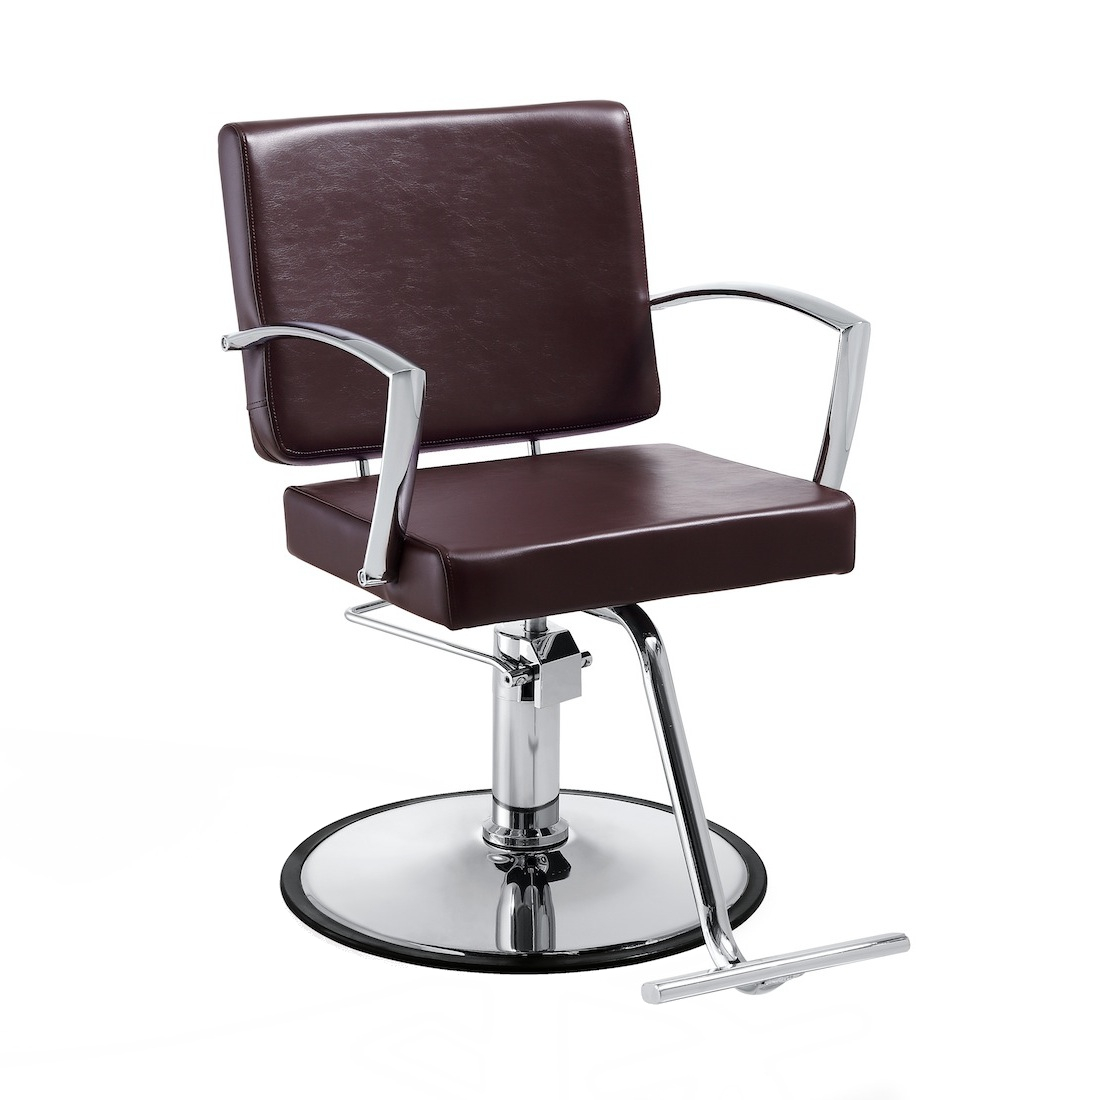 Cosmetology Chair Duke Sav 617 Salon Styling Chair In Mocha Or White 43 Free